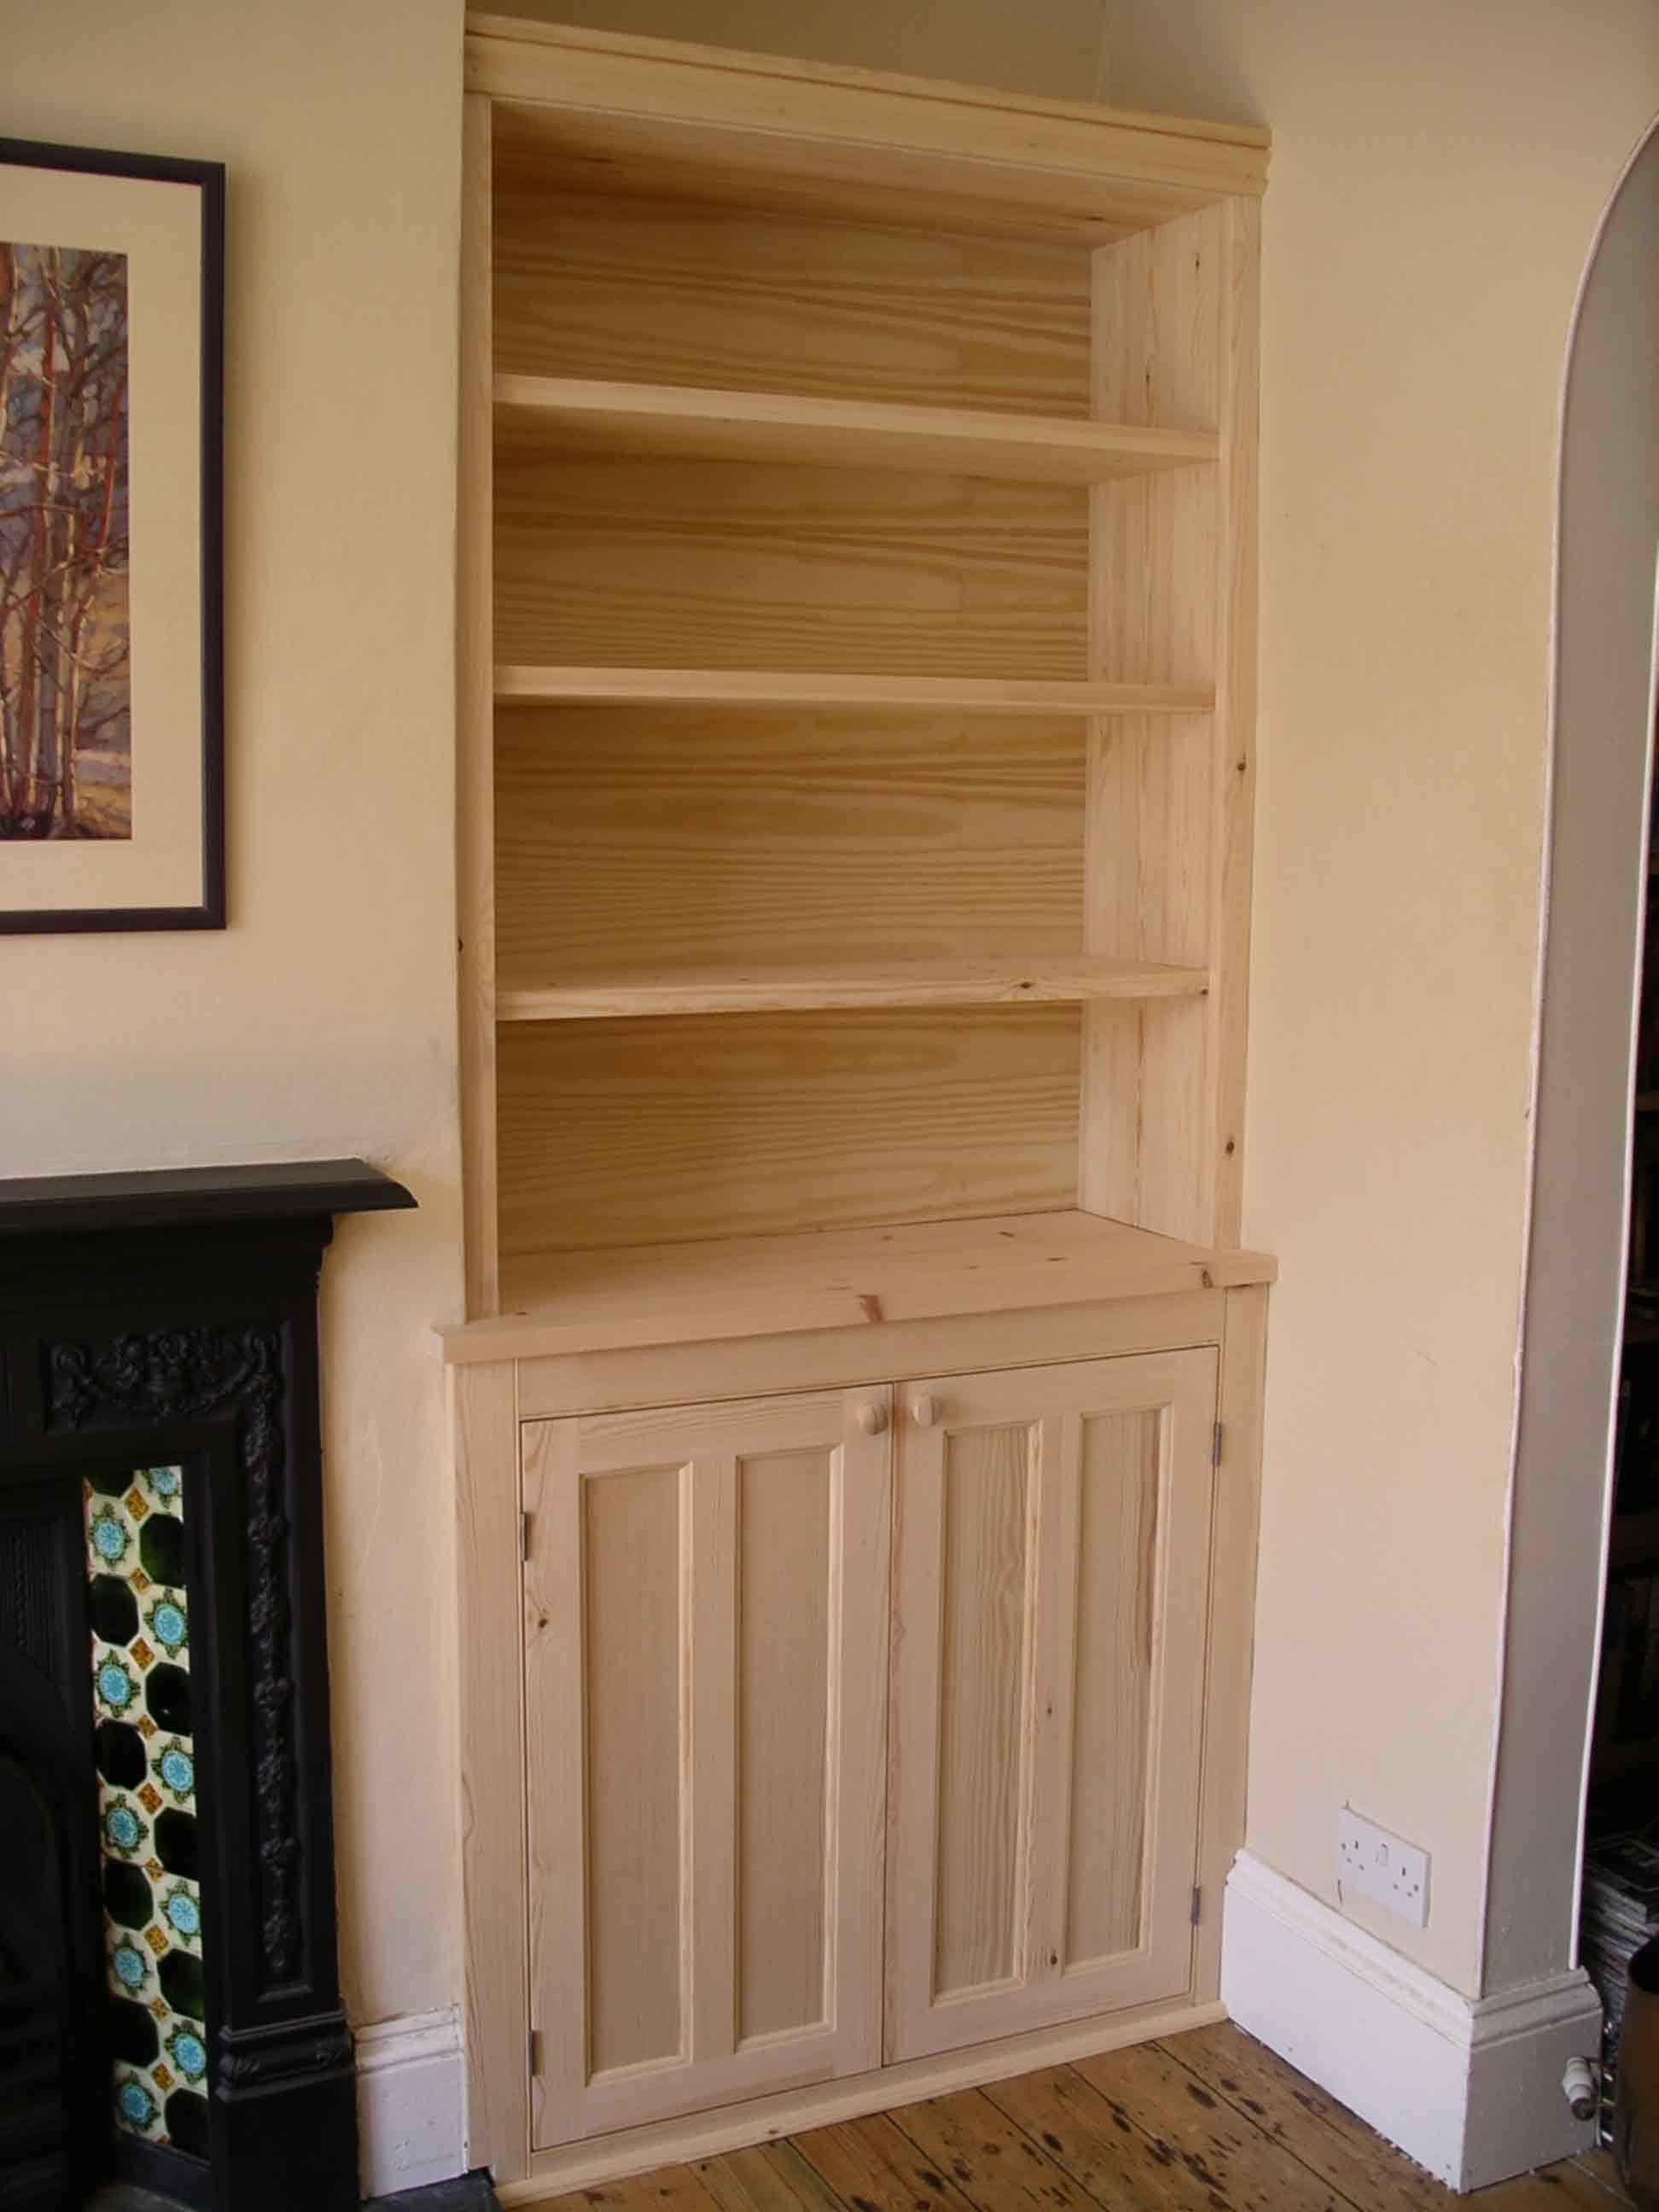 Period Style Alcove Cabinet In Solid Softwood Ready For Painting With Handmade Cupboards (Image 14 of 15)